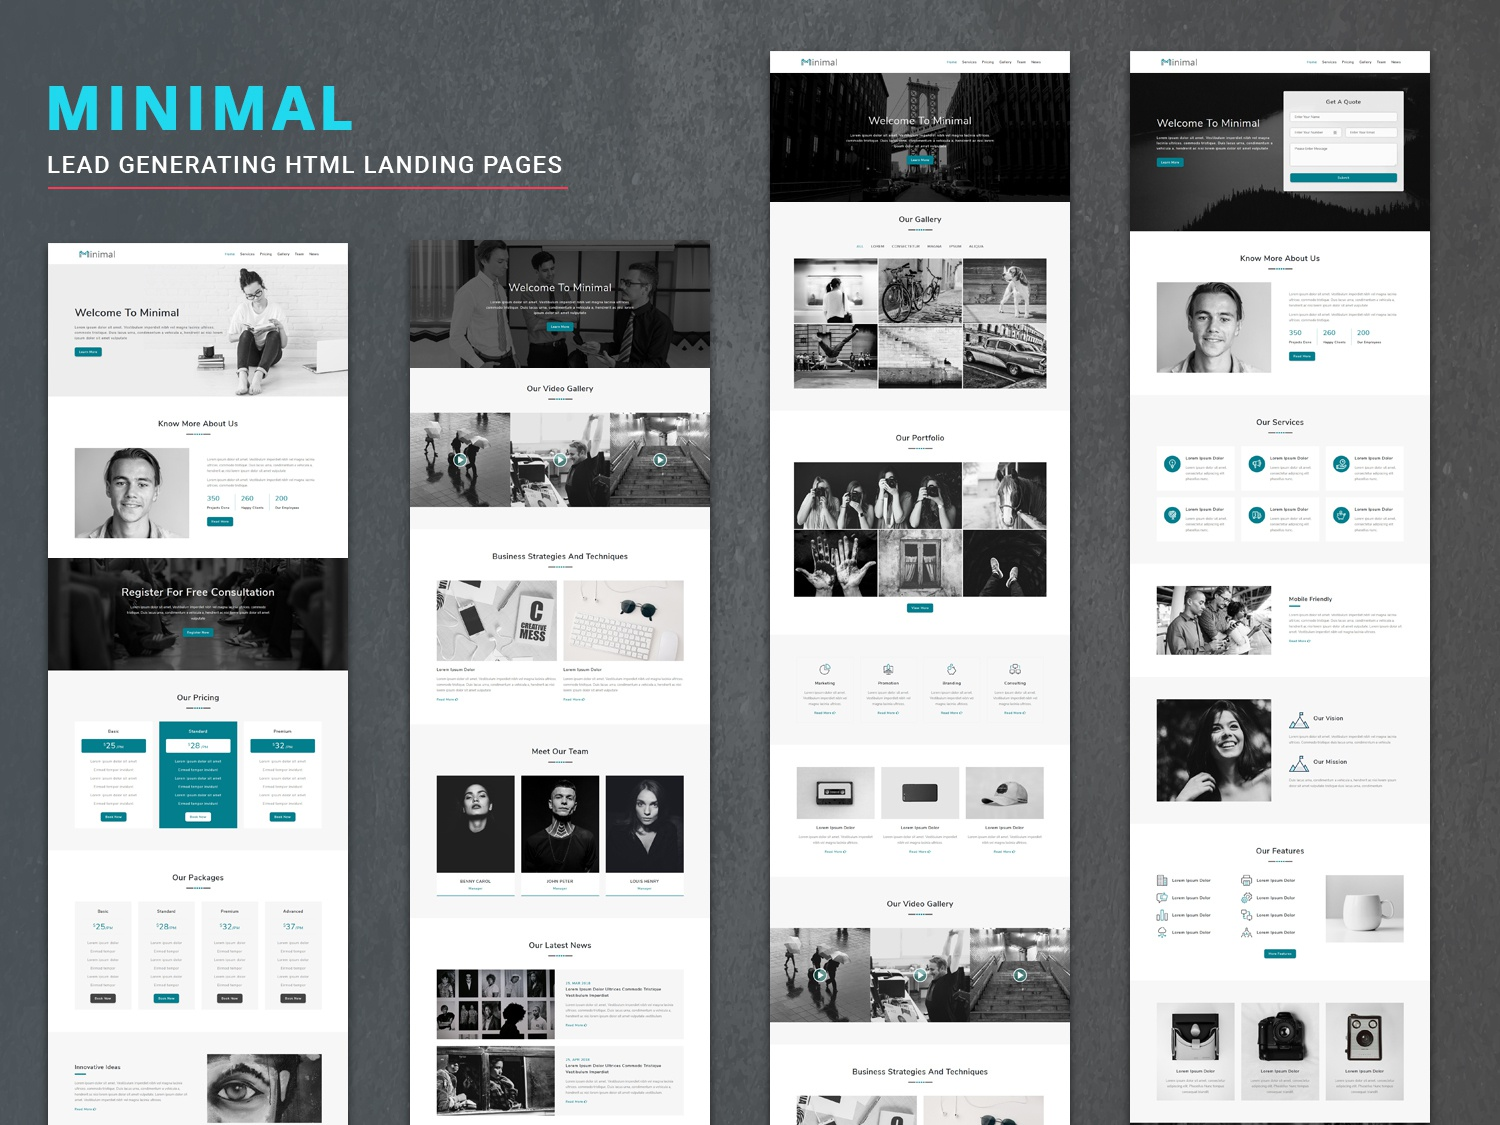 Minimal - HTML Landing Pages by Pennyblack Templates on Dribbble